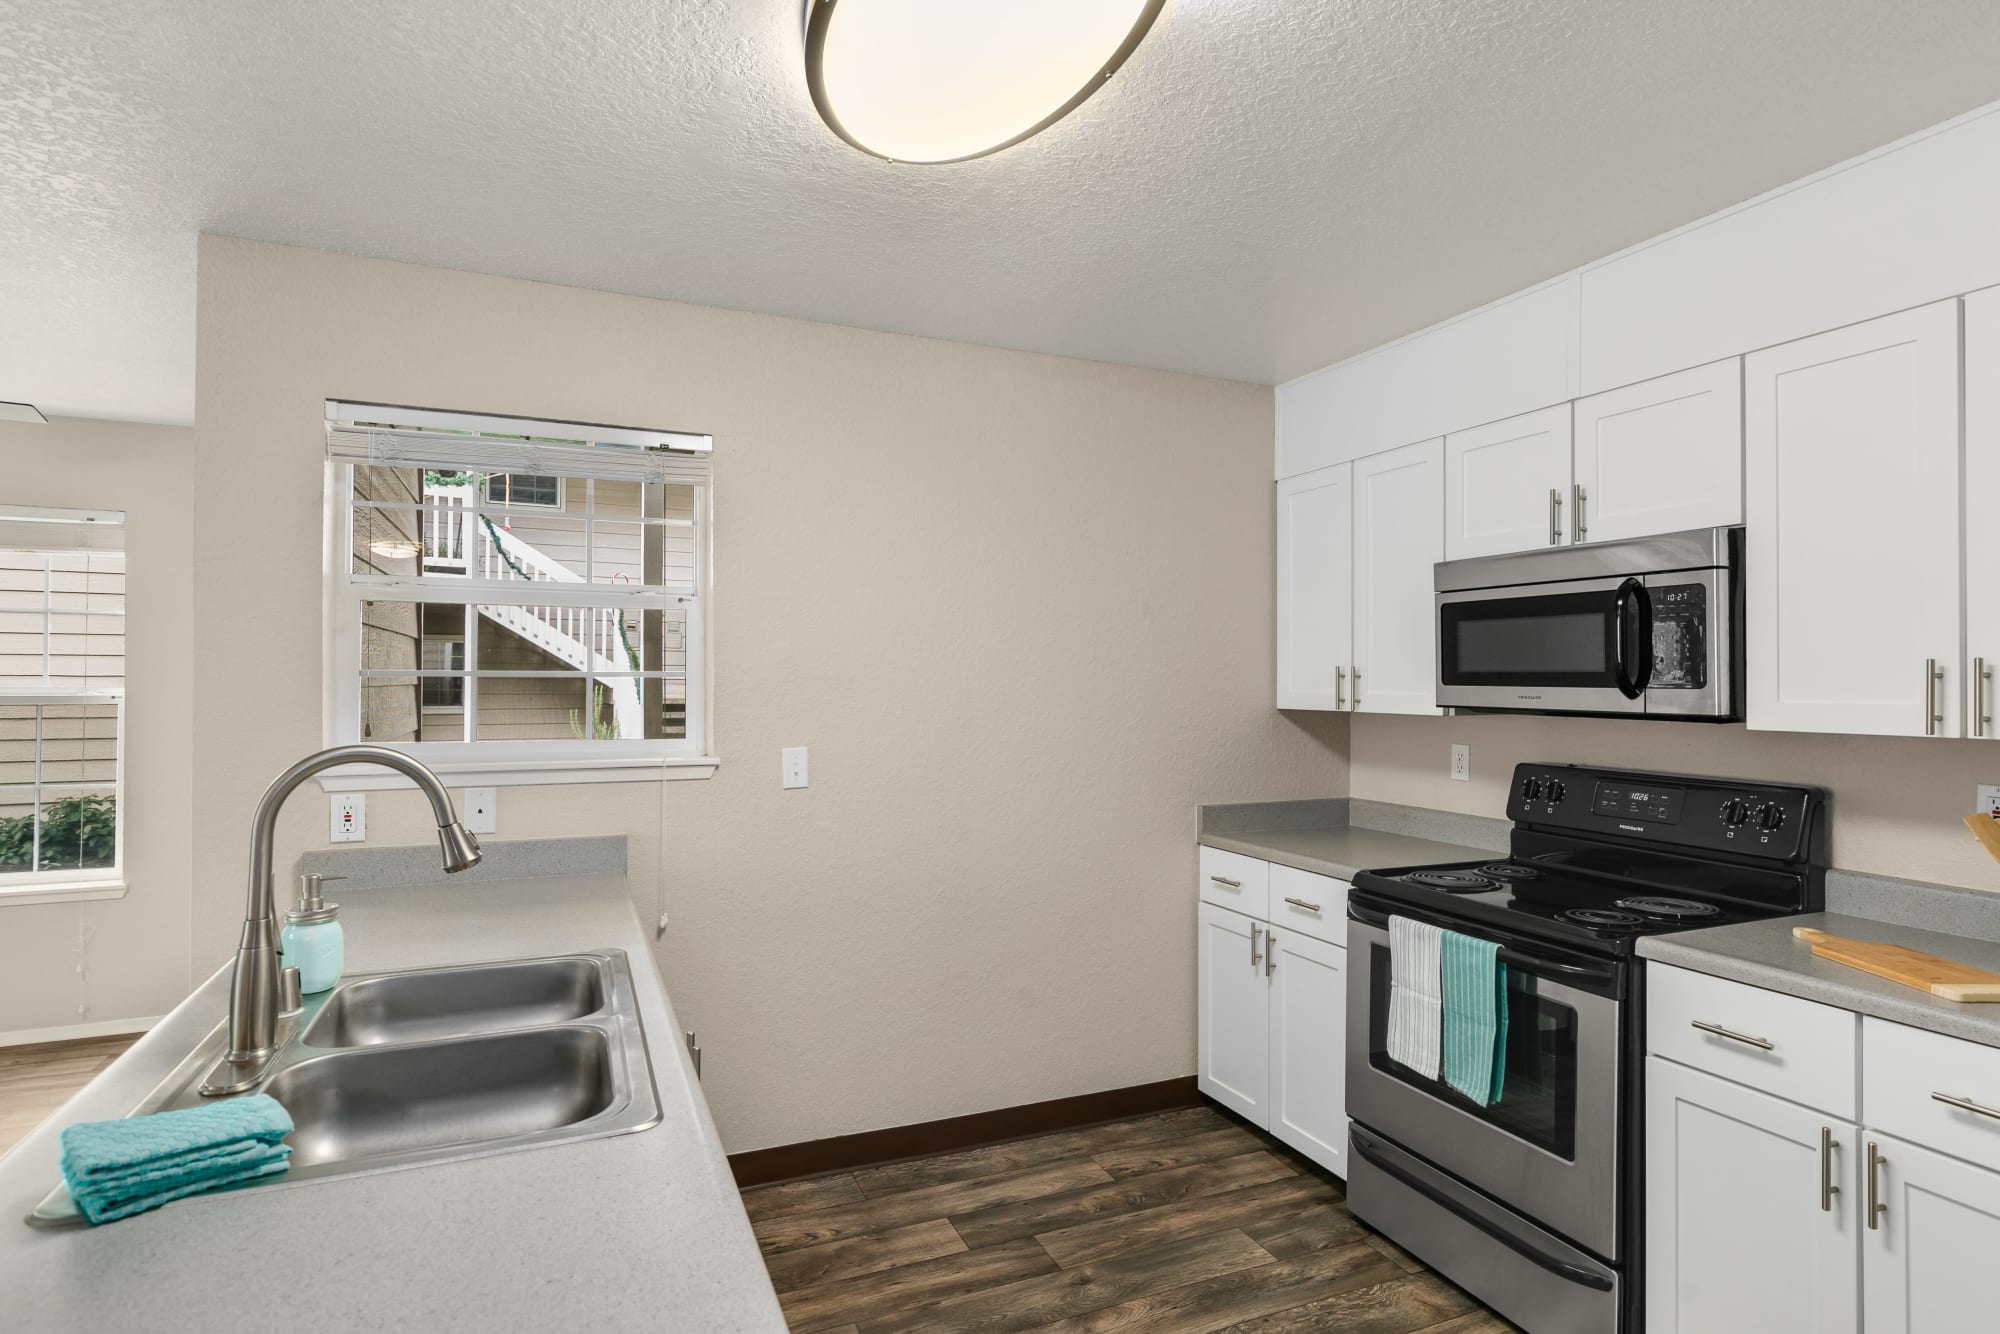 Recently renovated kitchen with white cabinet doors at Carriage Park Apartments in Vancouver, Washington